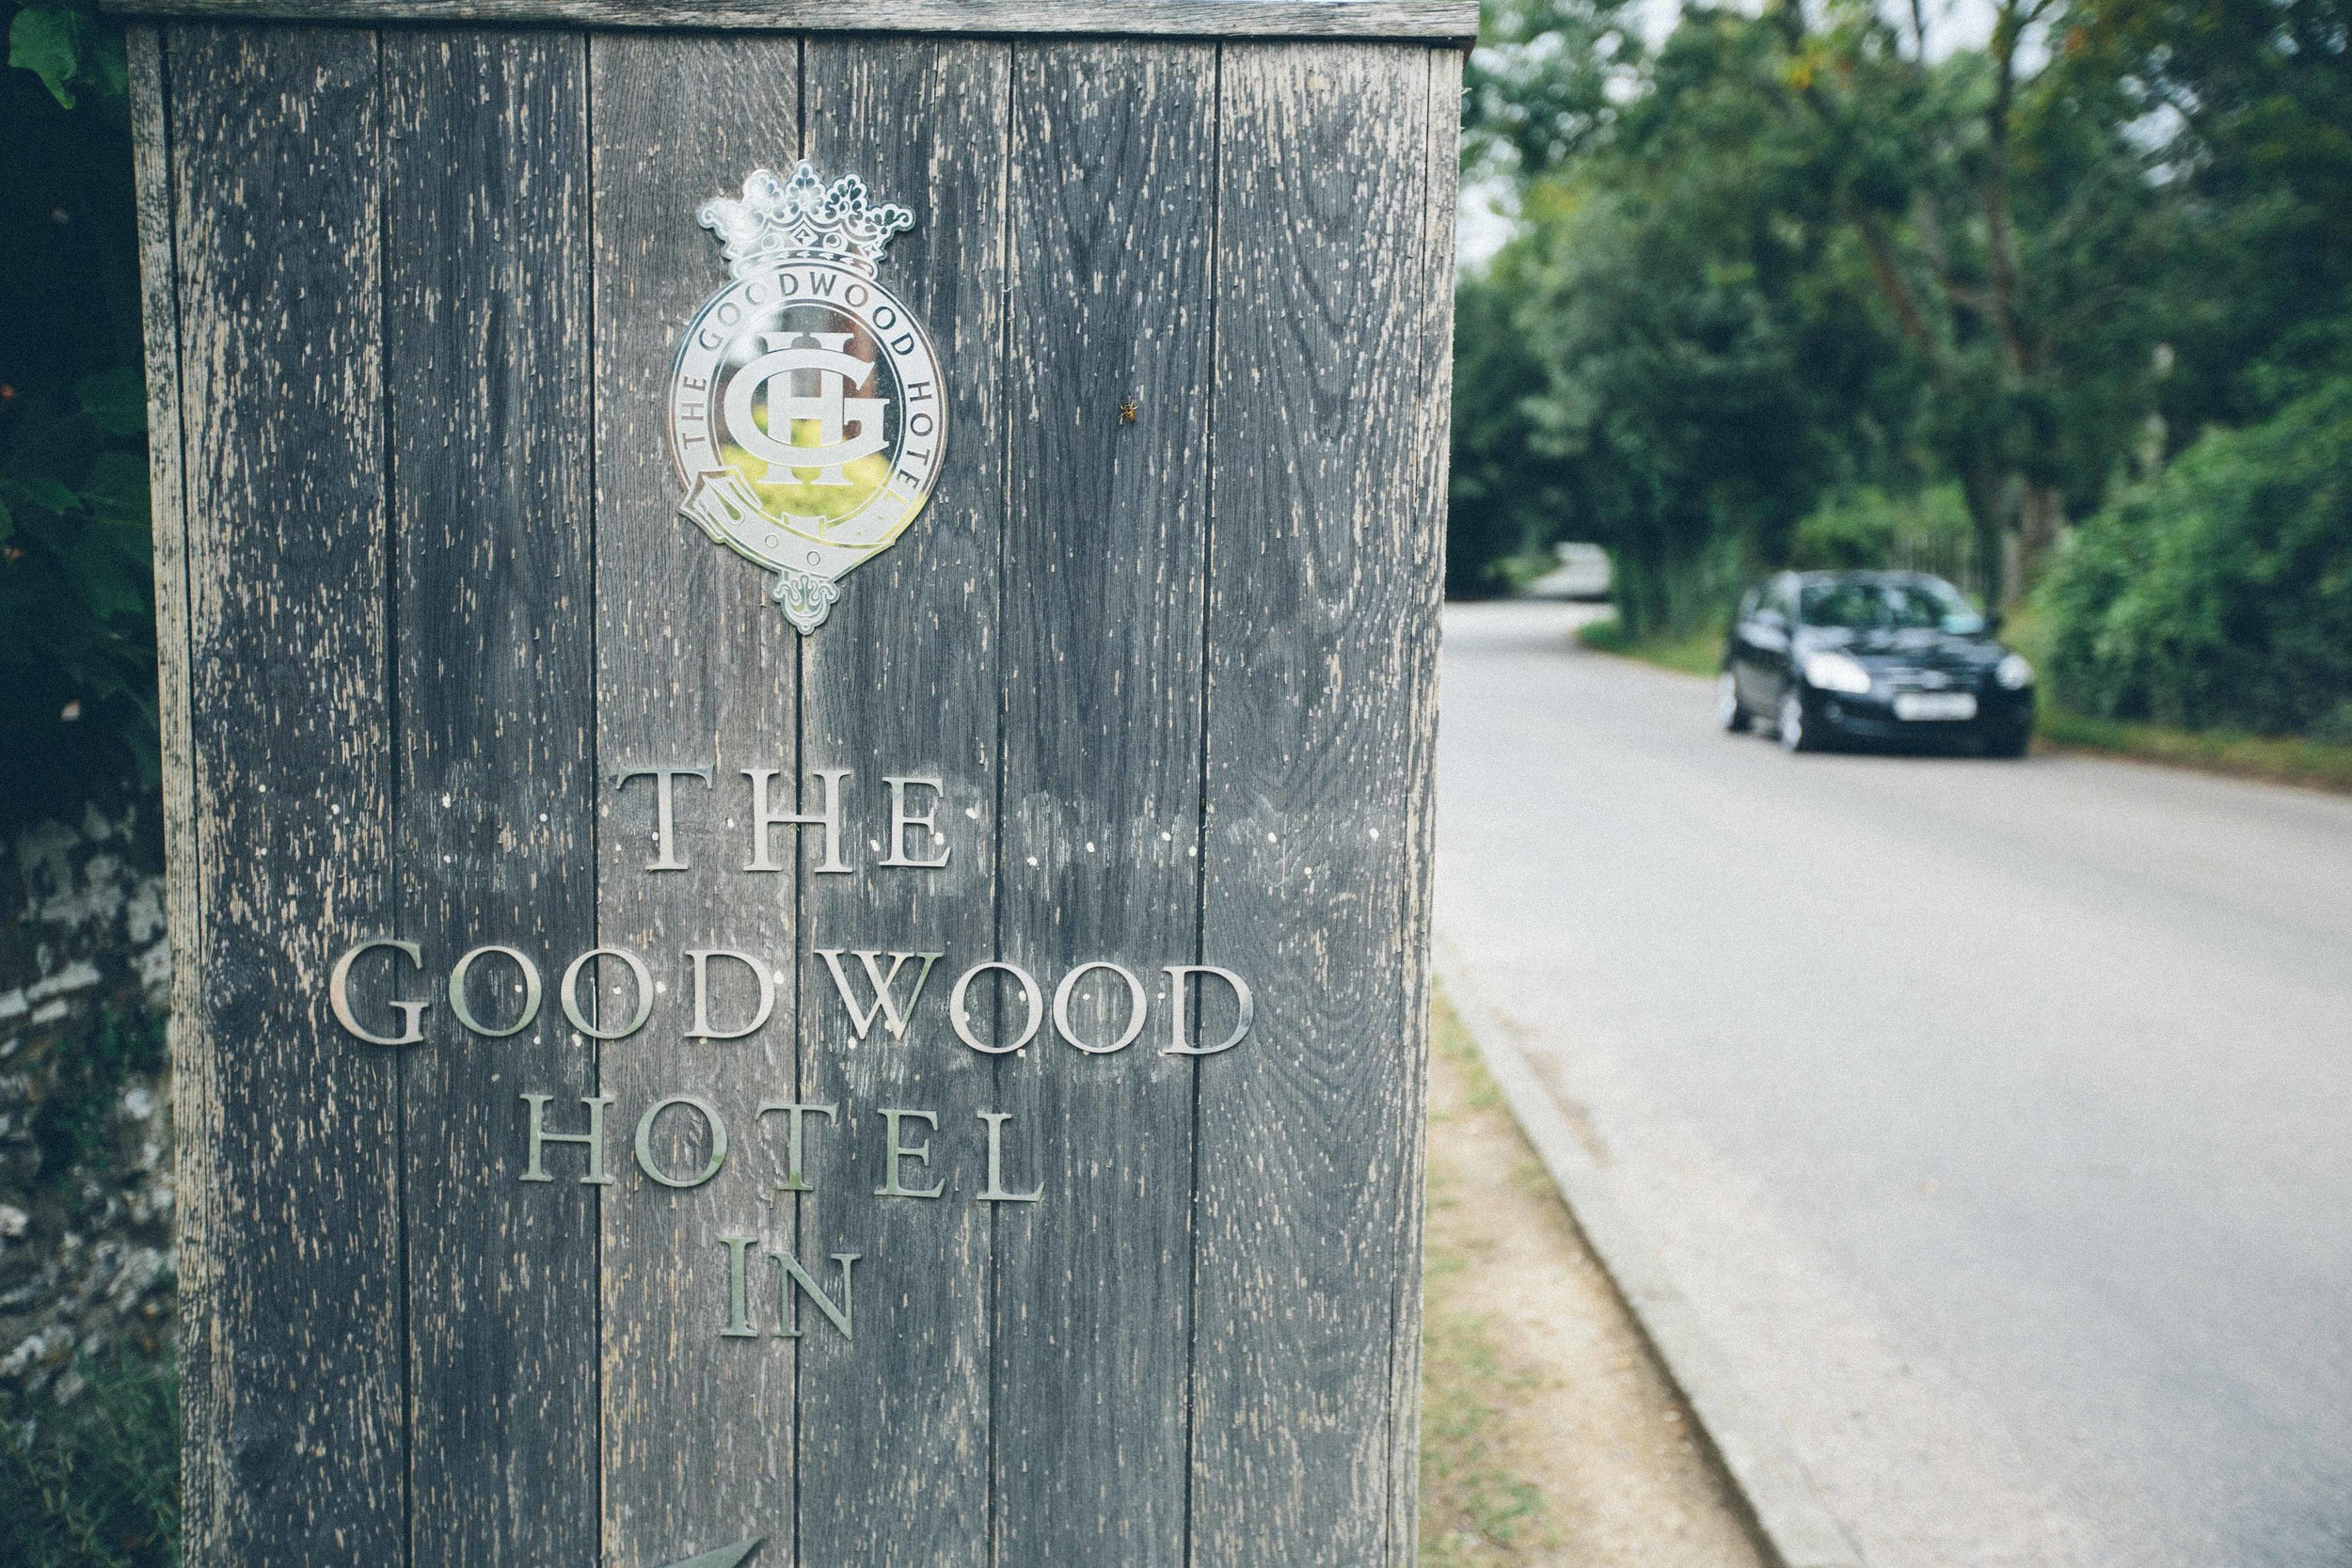 Goodwood-estate-aerodrome-Chichester-Sussex-wedding-3